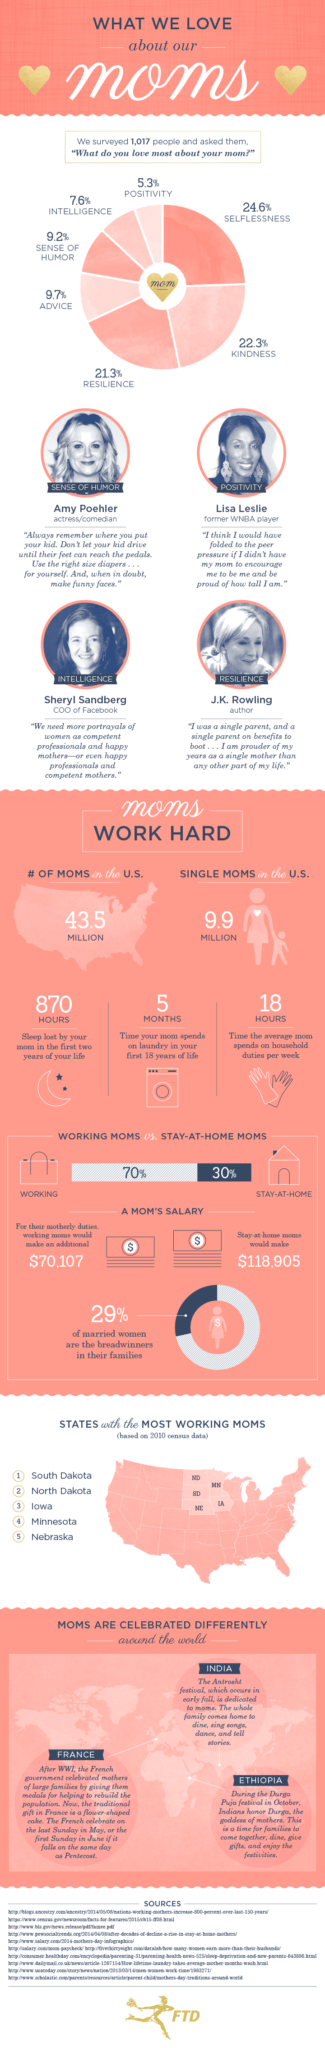 Why We Love Mom - This fun INFOGRAPHIC clearly illustrates what we love about our moms.